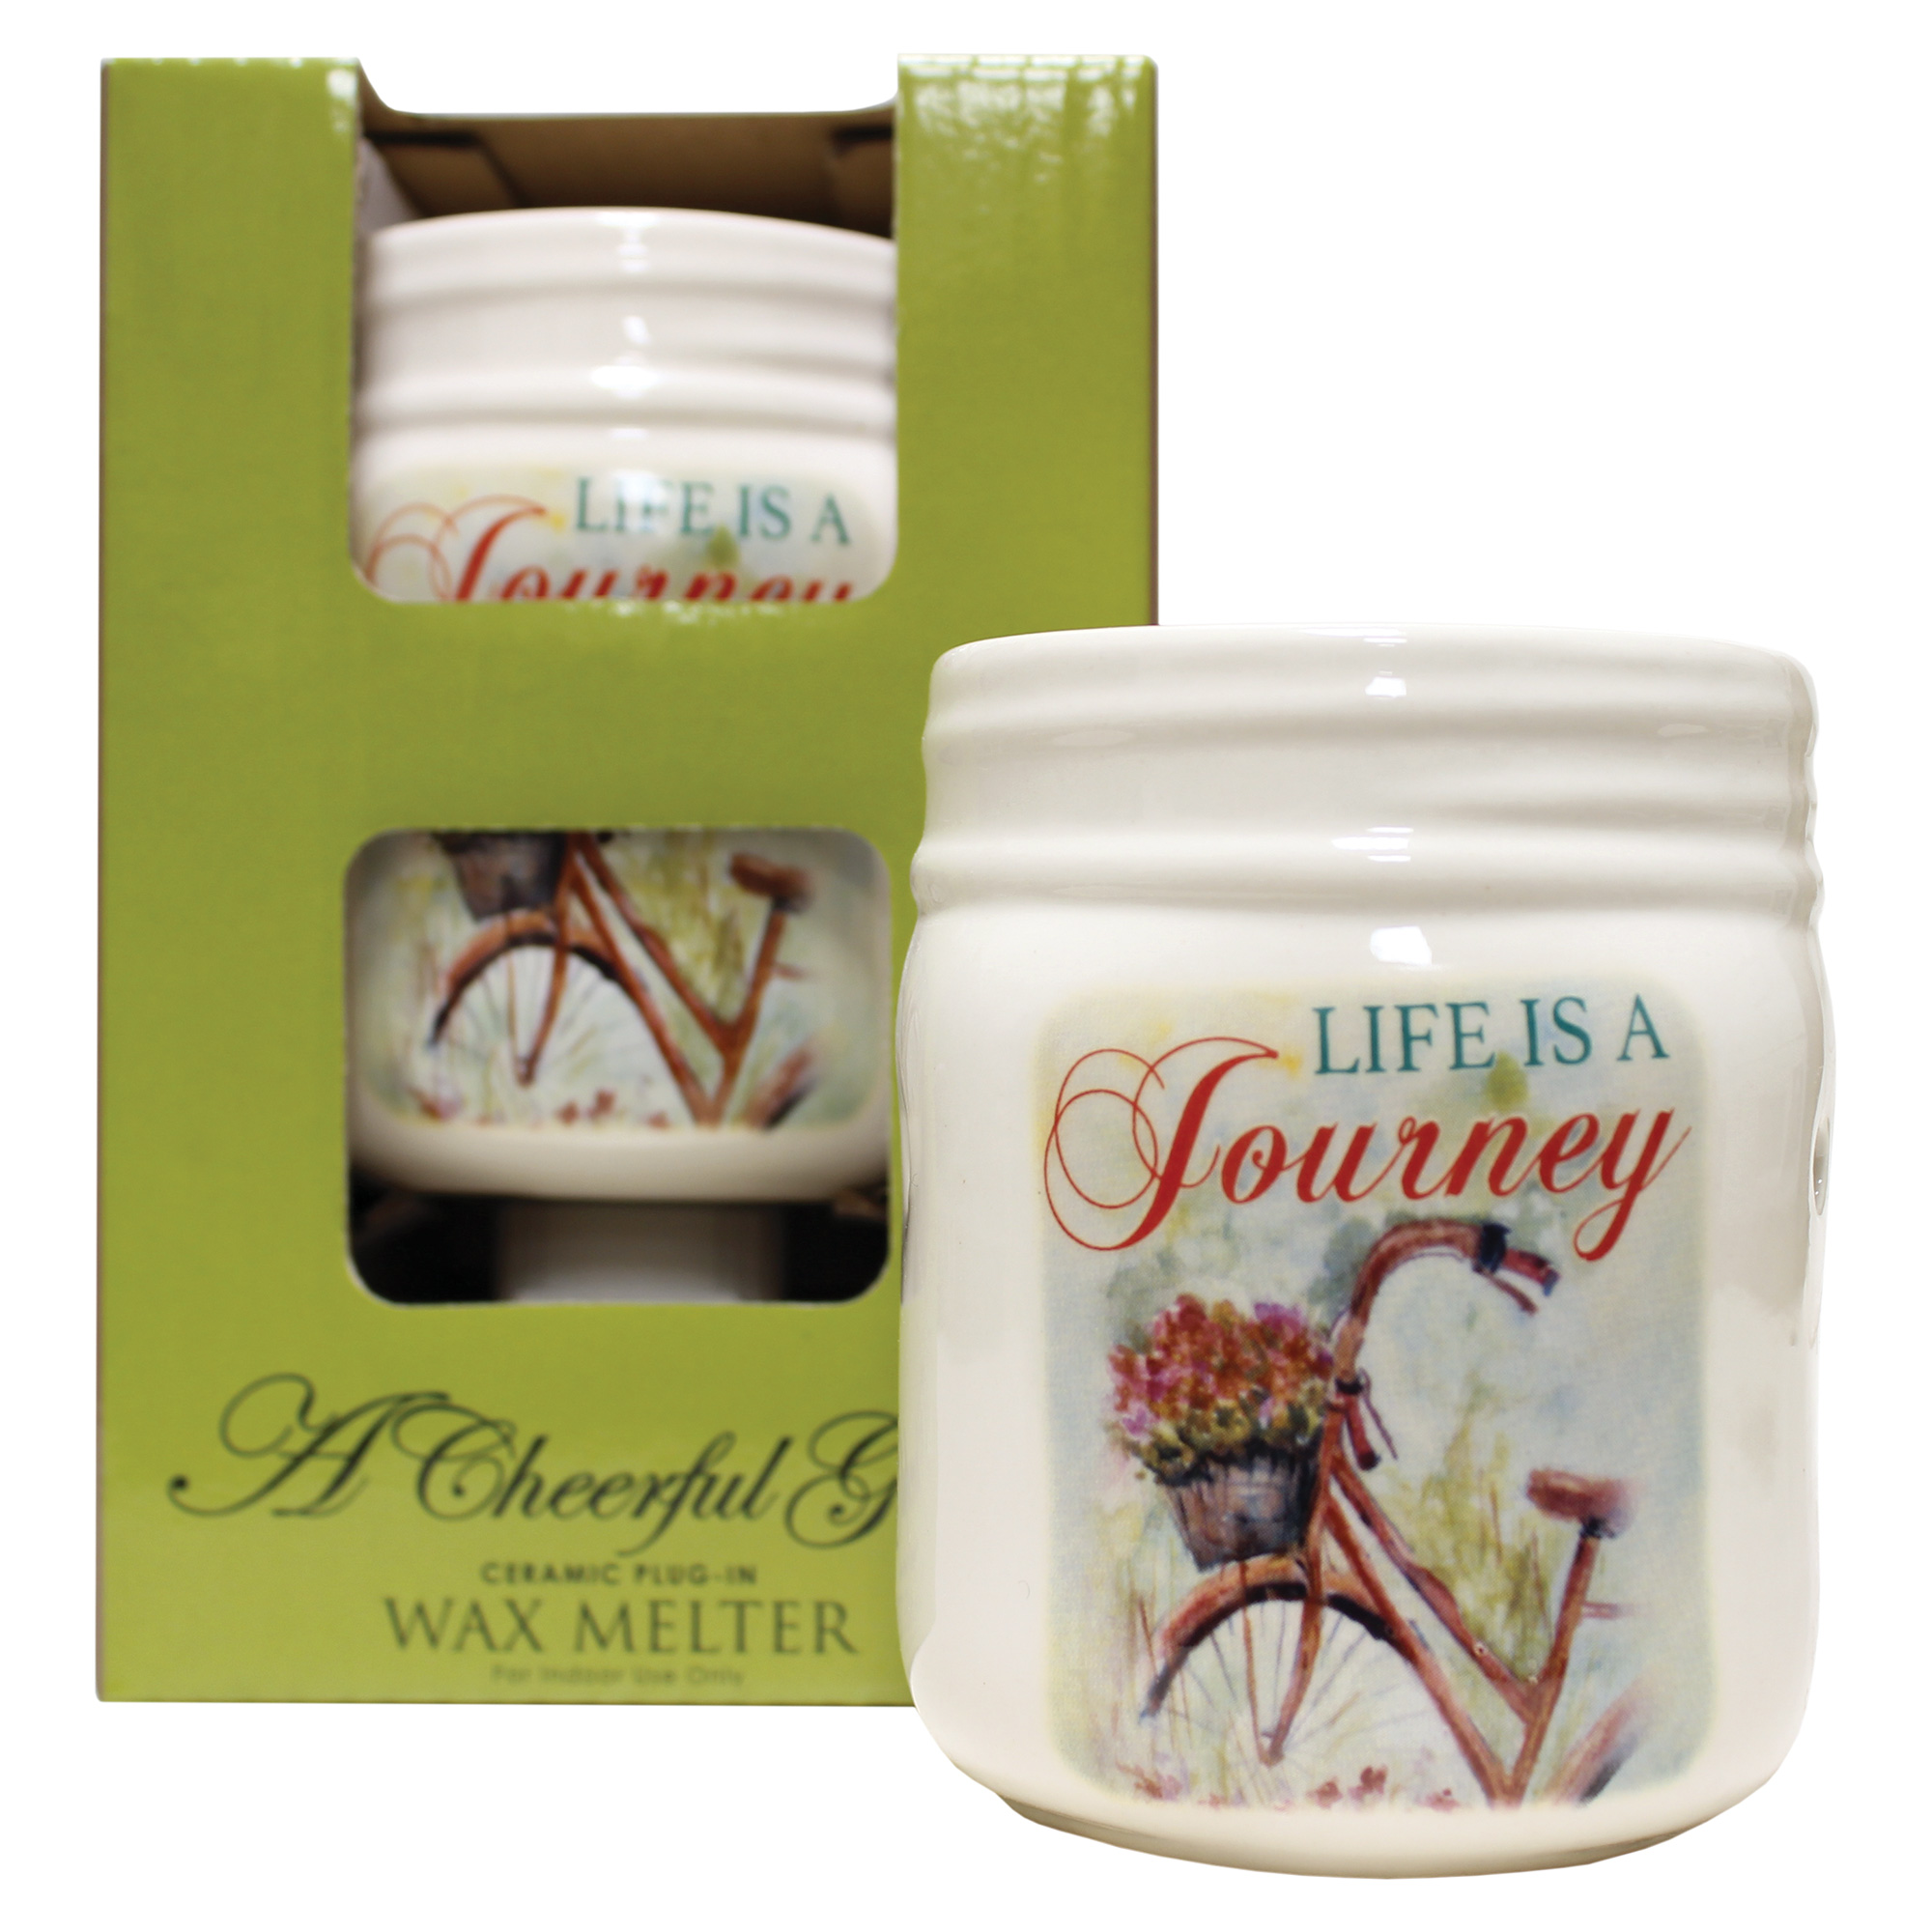 LIFE IS A JOURNEY NIGHT LIGHT WAX MELTER